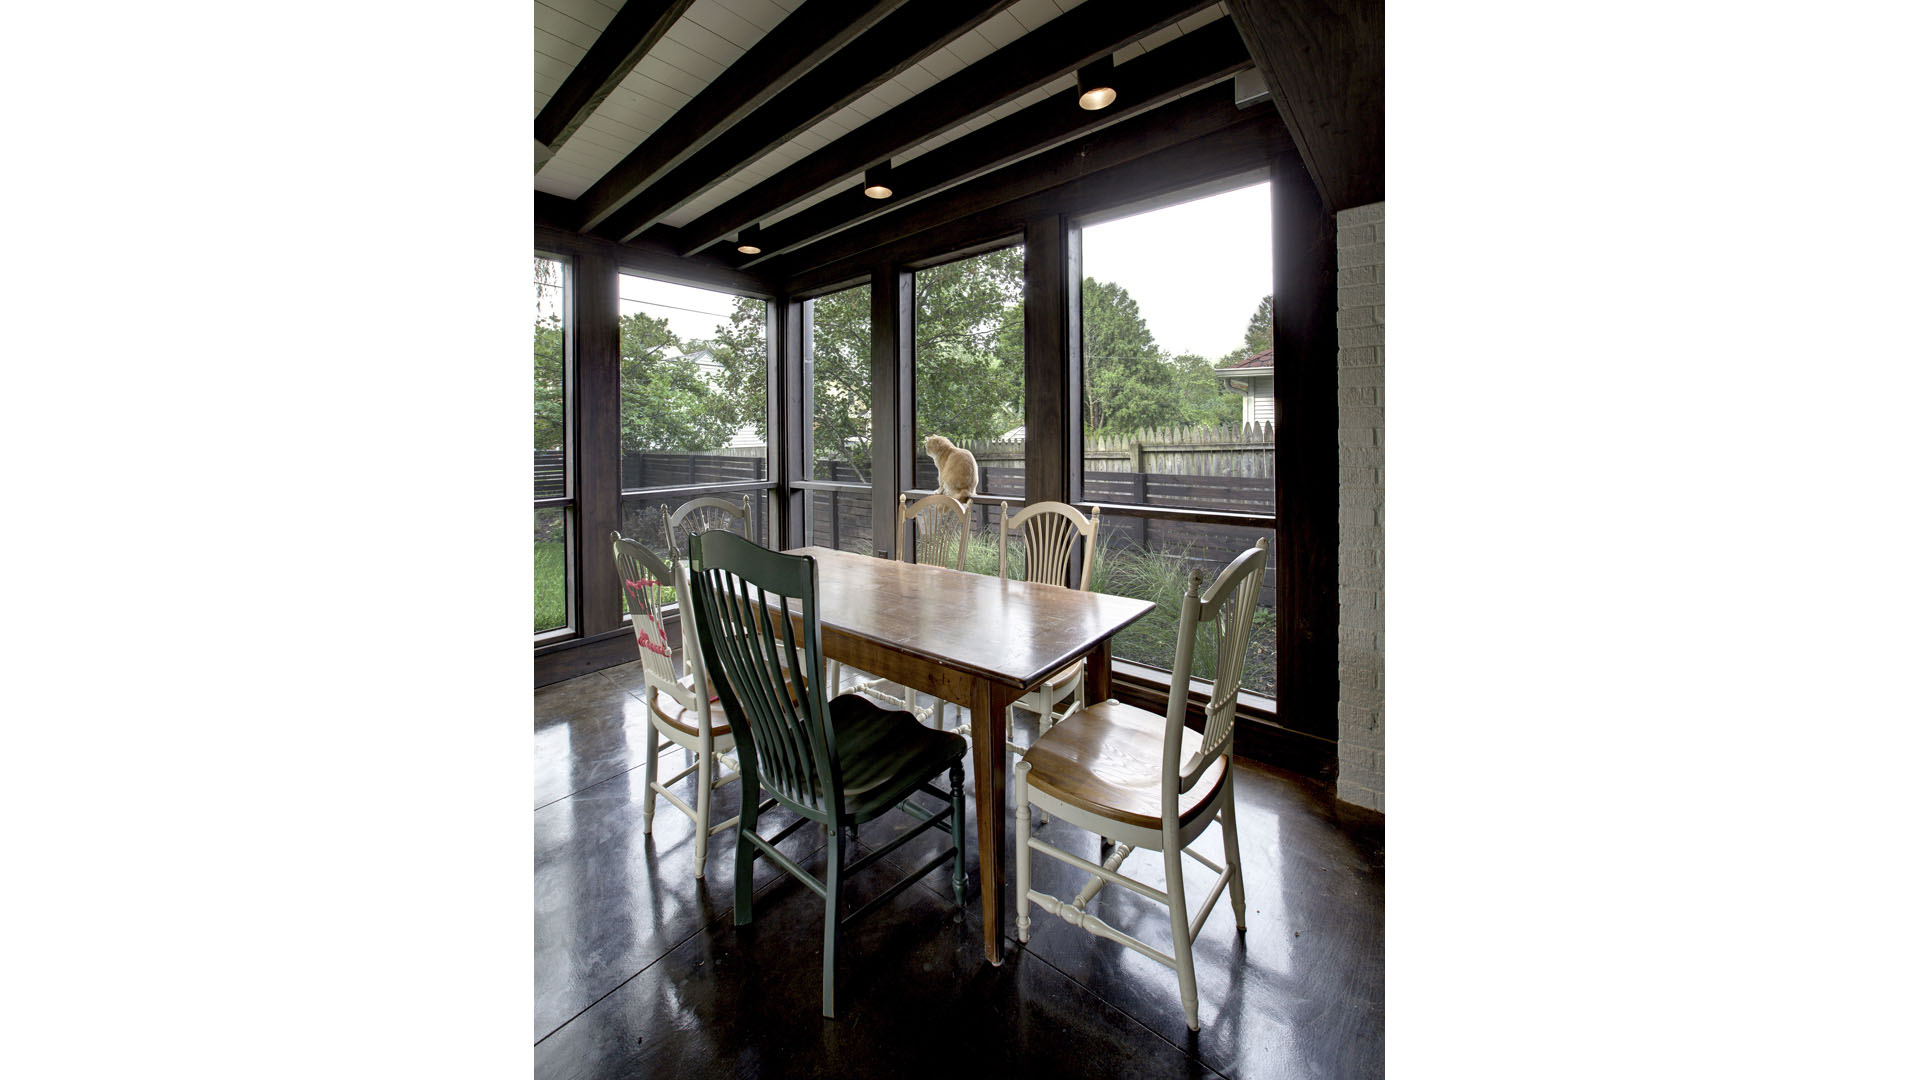 Classic Butler Tarkington Modern Tudor Renovation, Three Sided Flat Roof Family Screened Porch Dining Table Cat Concrete Floors, HAUS Architecture, WERK Building Modern, Christopher Short, Indianapolis Architect